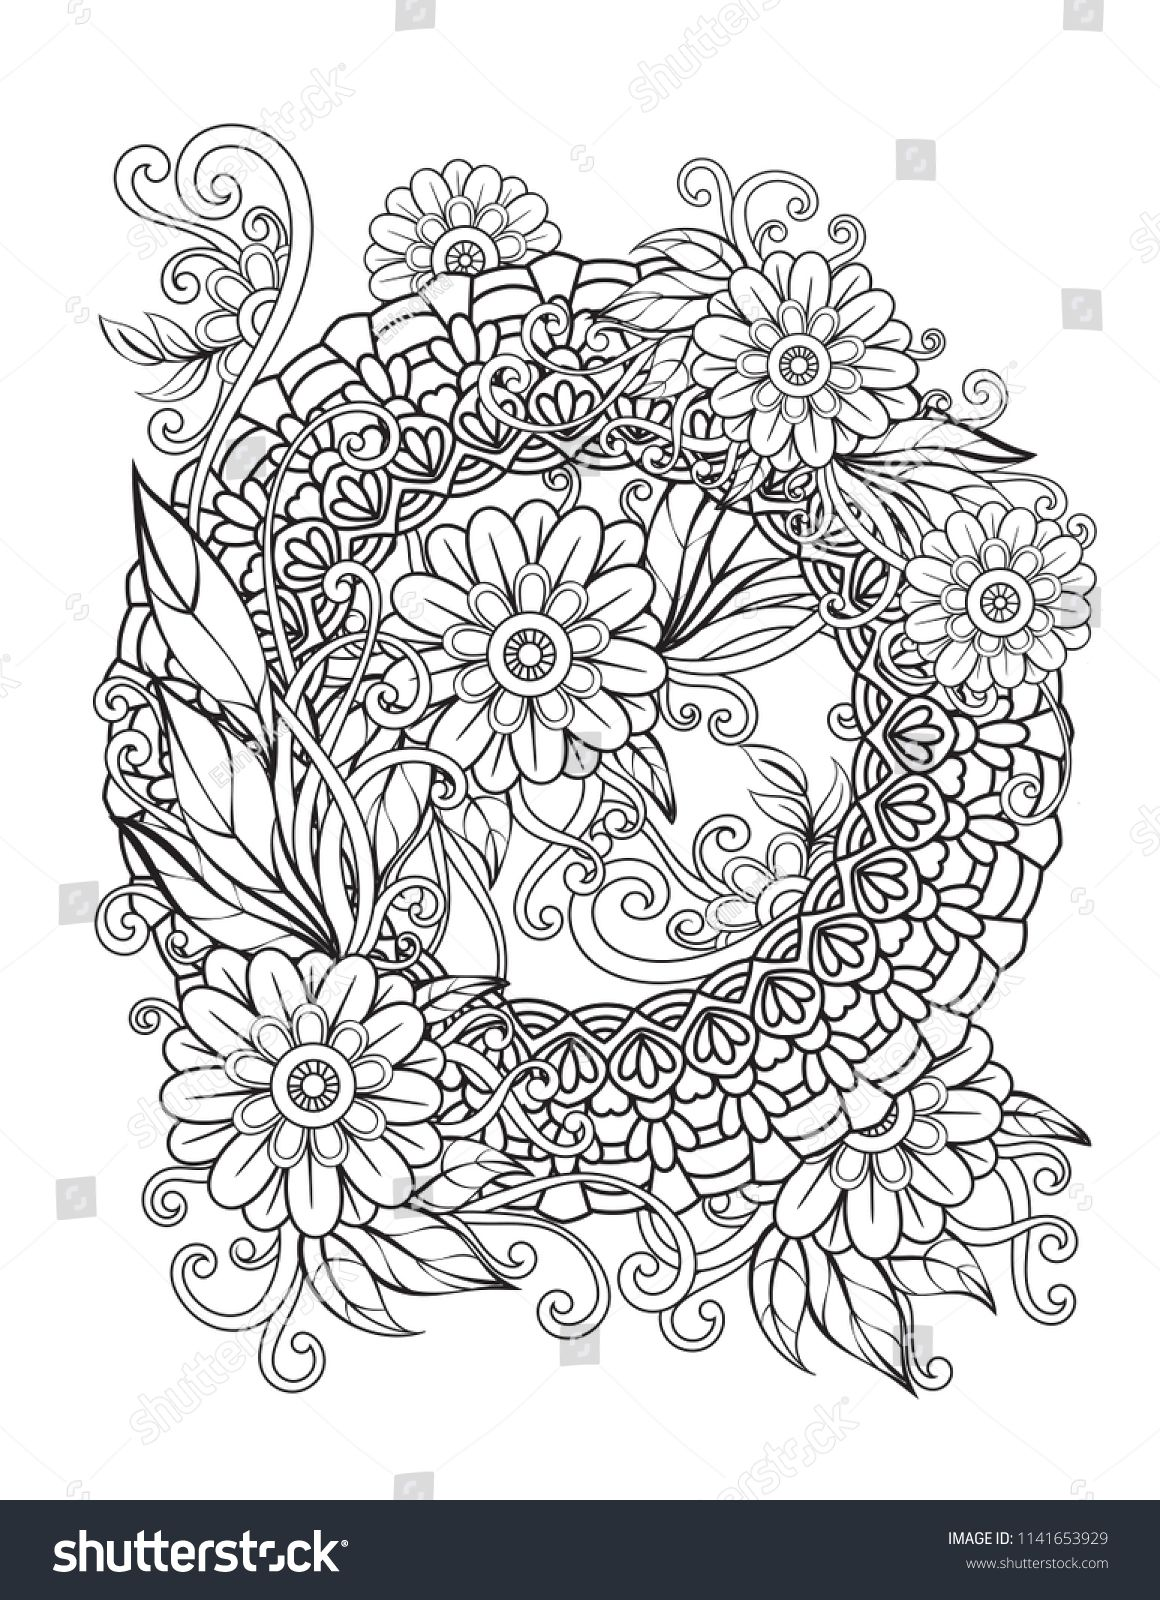 Floral mandala pattern in black and white. Adult coloring book page with  flowers and mandalas